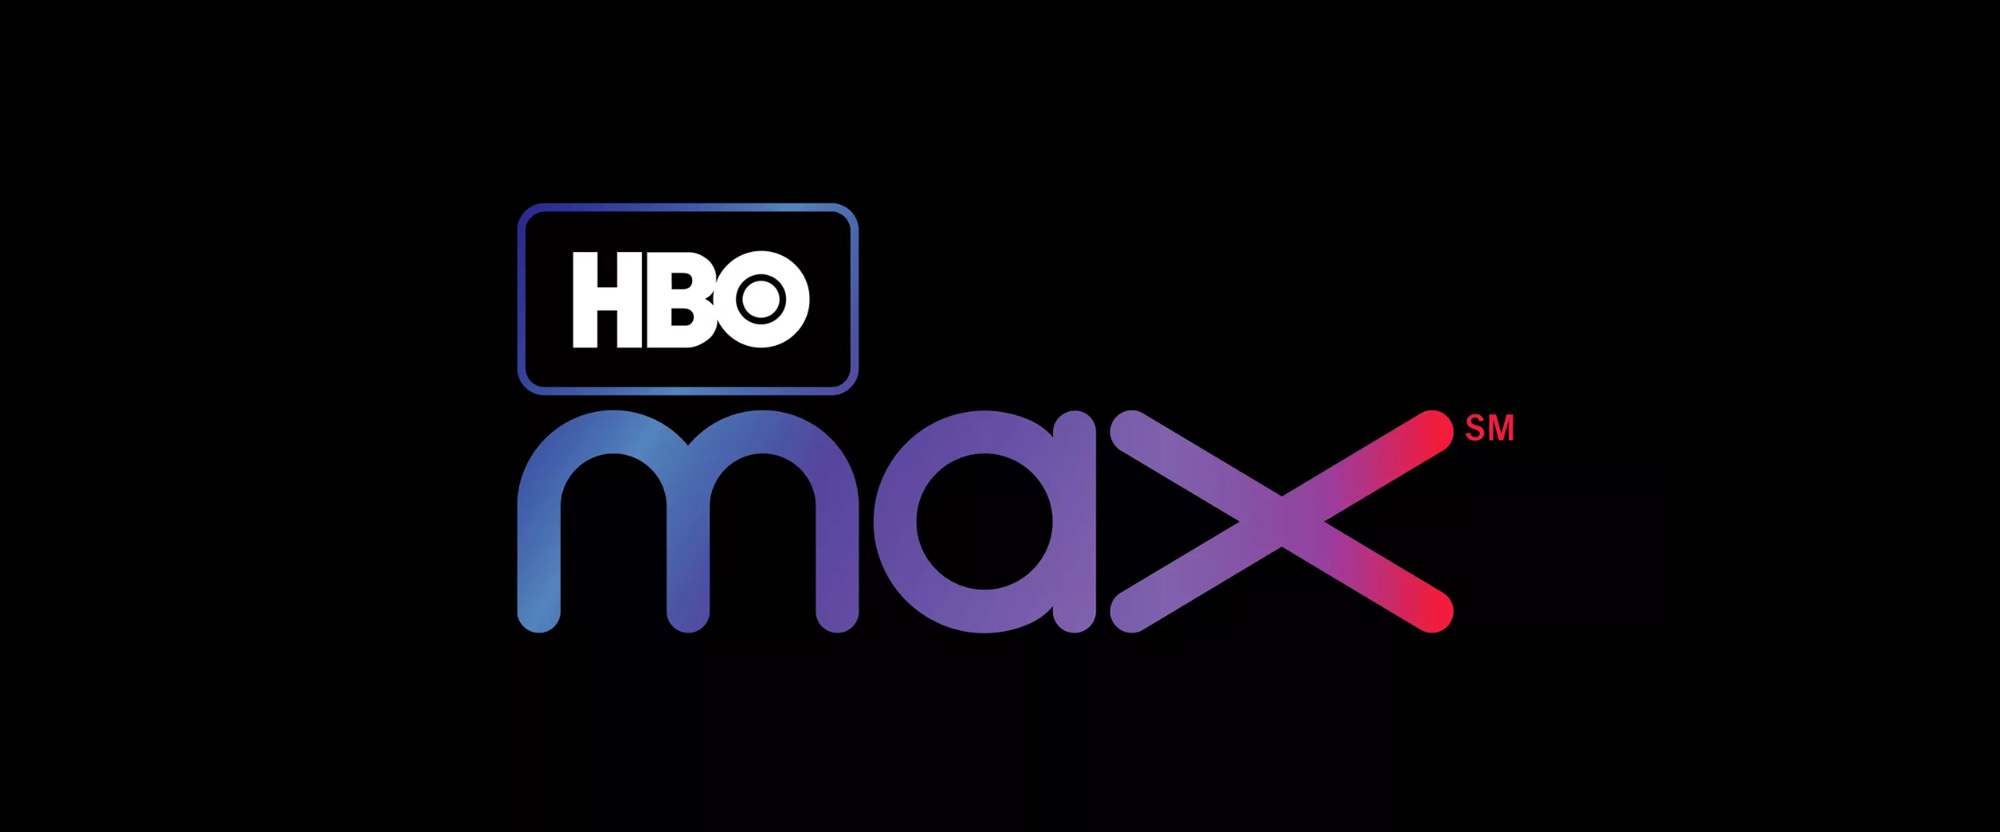 New Name and Logo for HBO Max